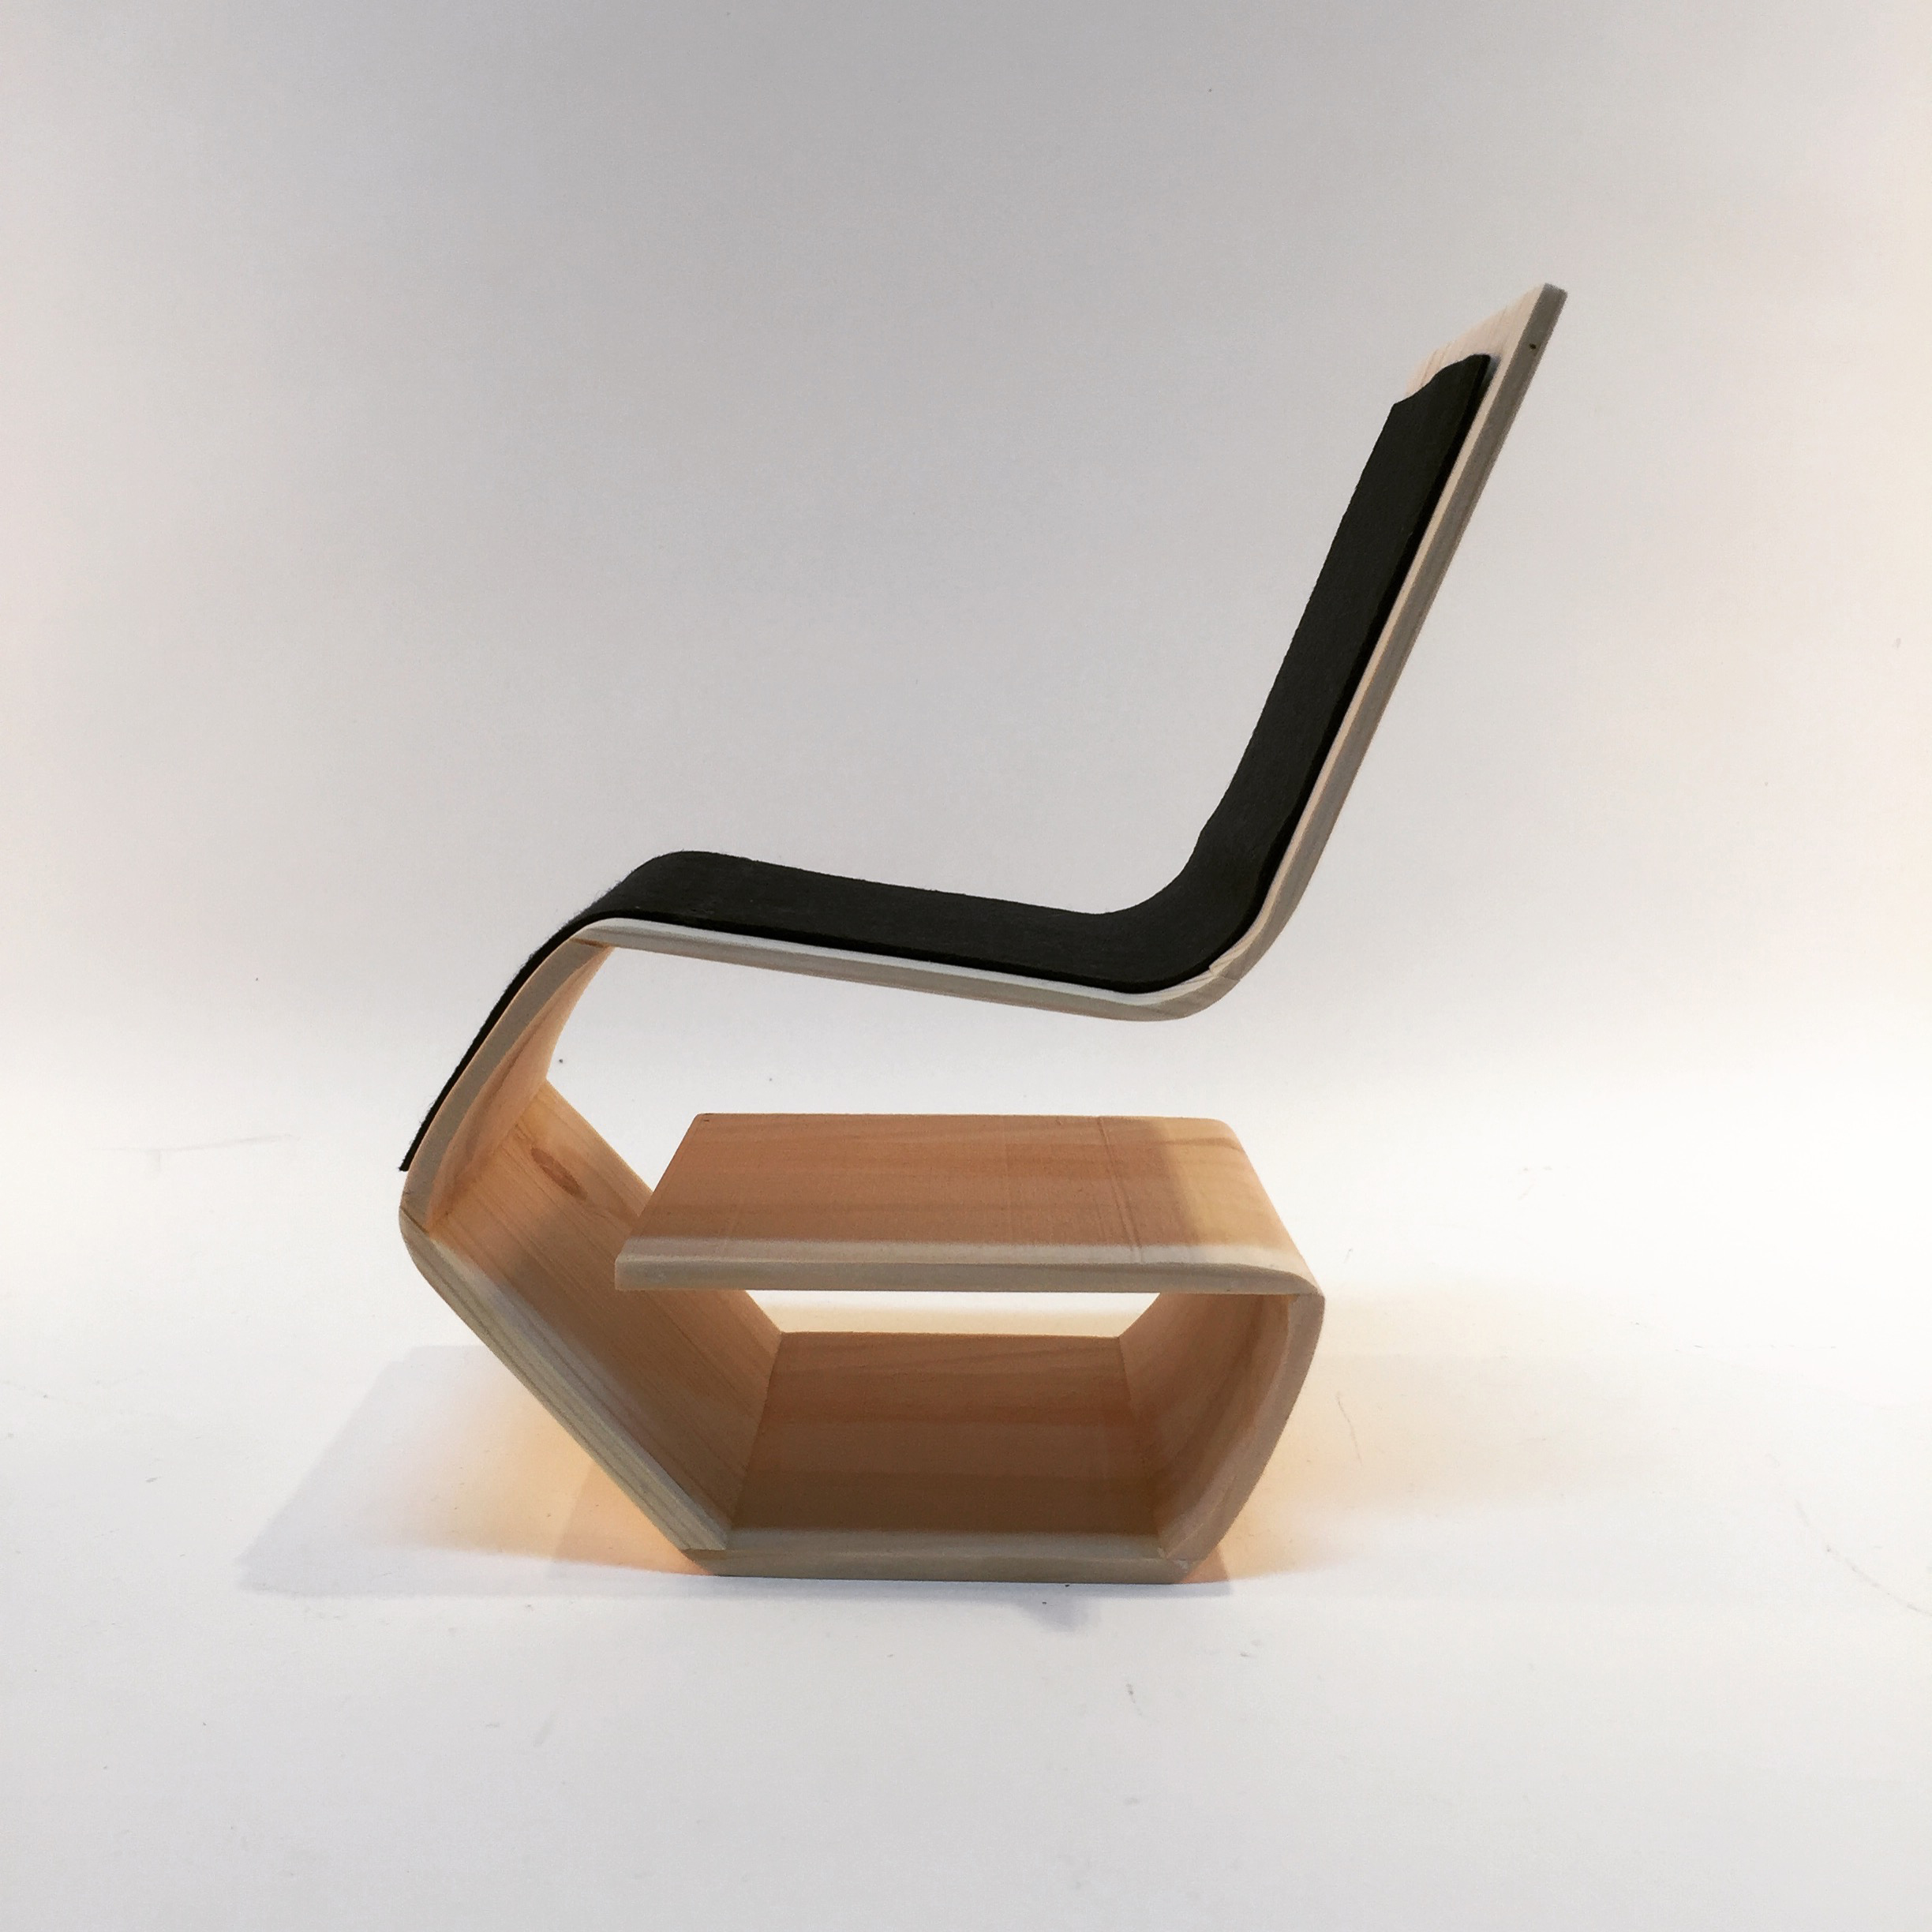 Earning Her Way Furniture Design Student Receives Prestigious